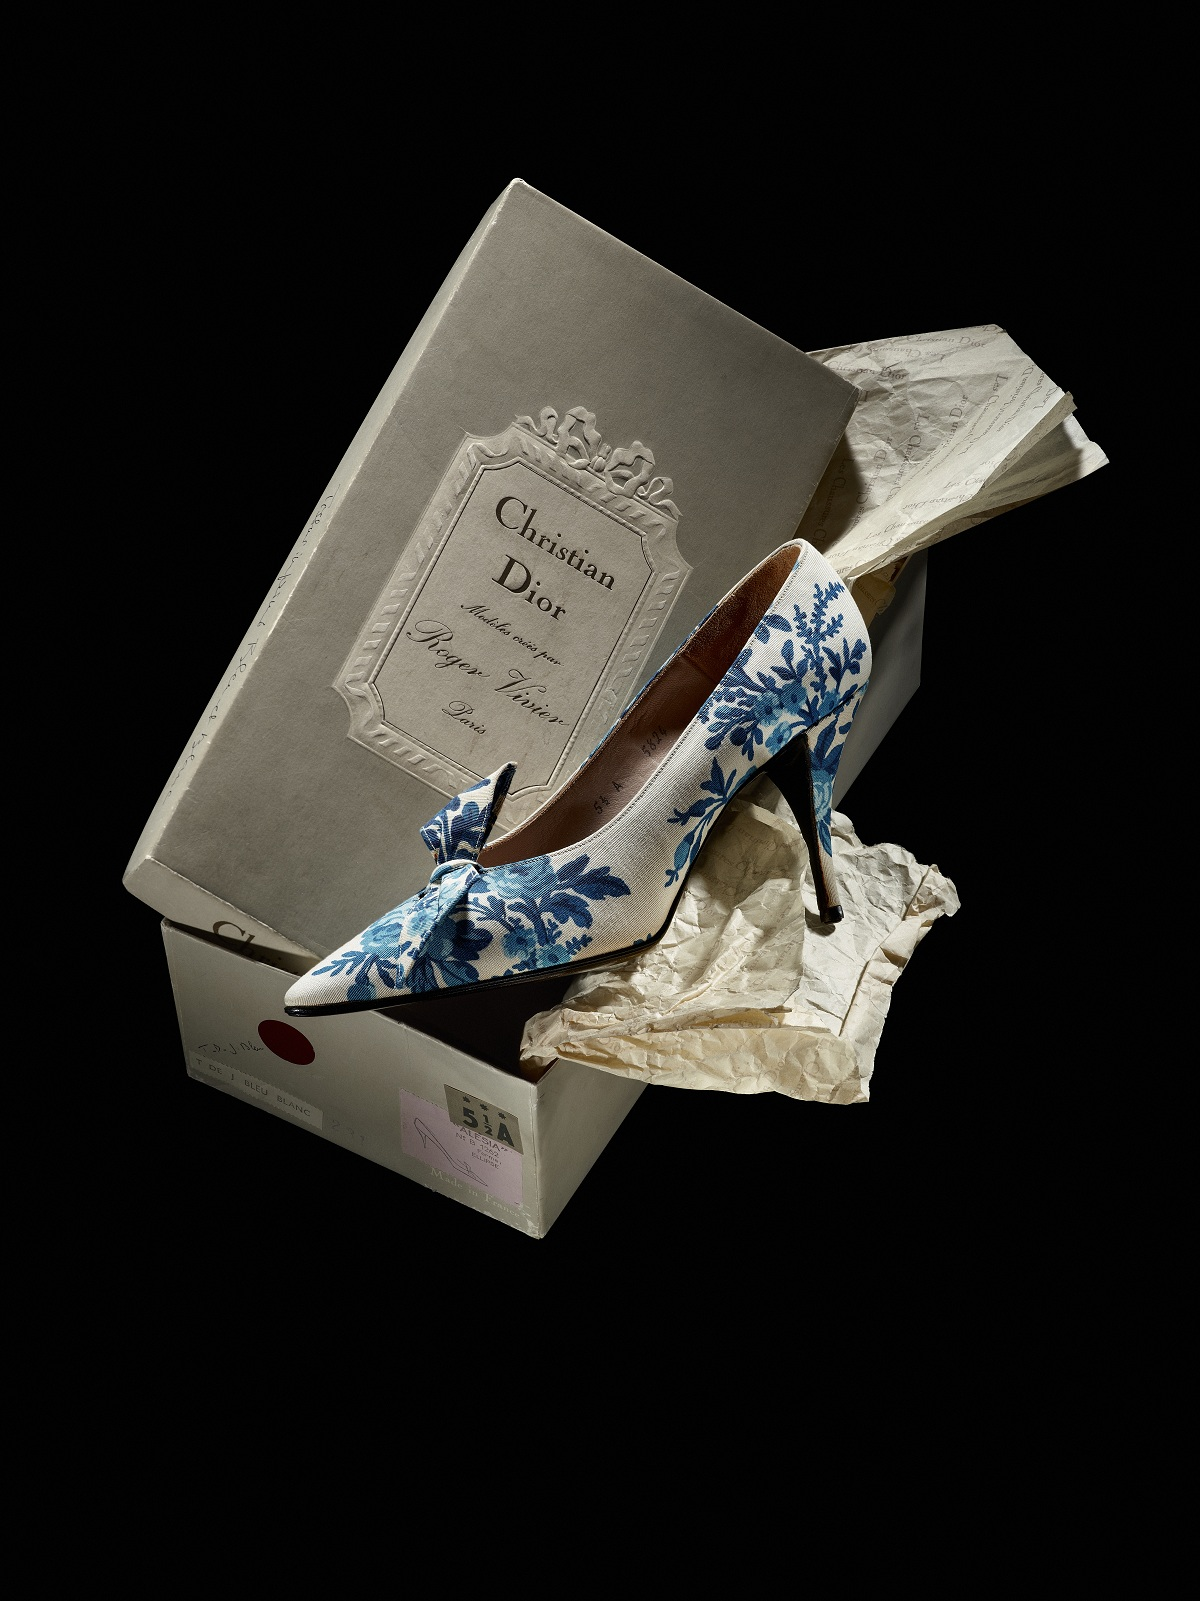 Versailles pumps Christian Dior by Roger Vivier 1960 Fashionela